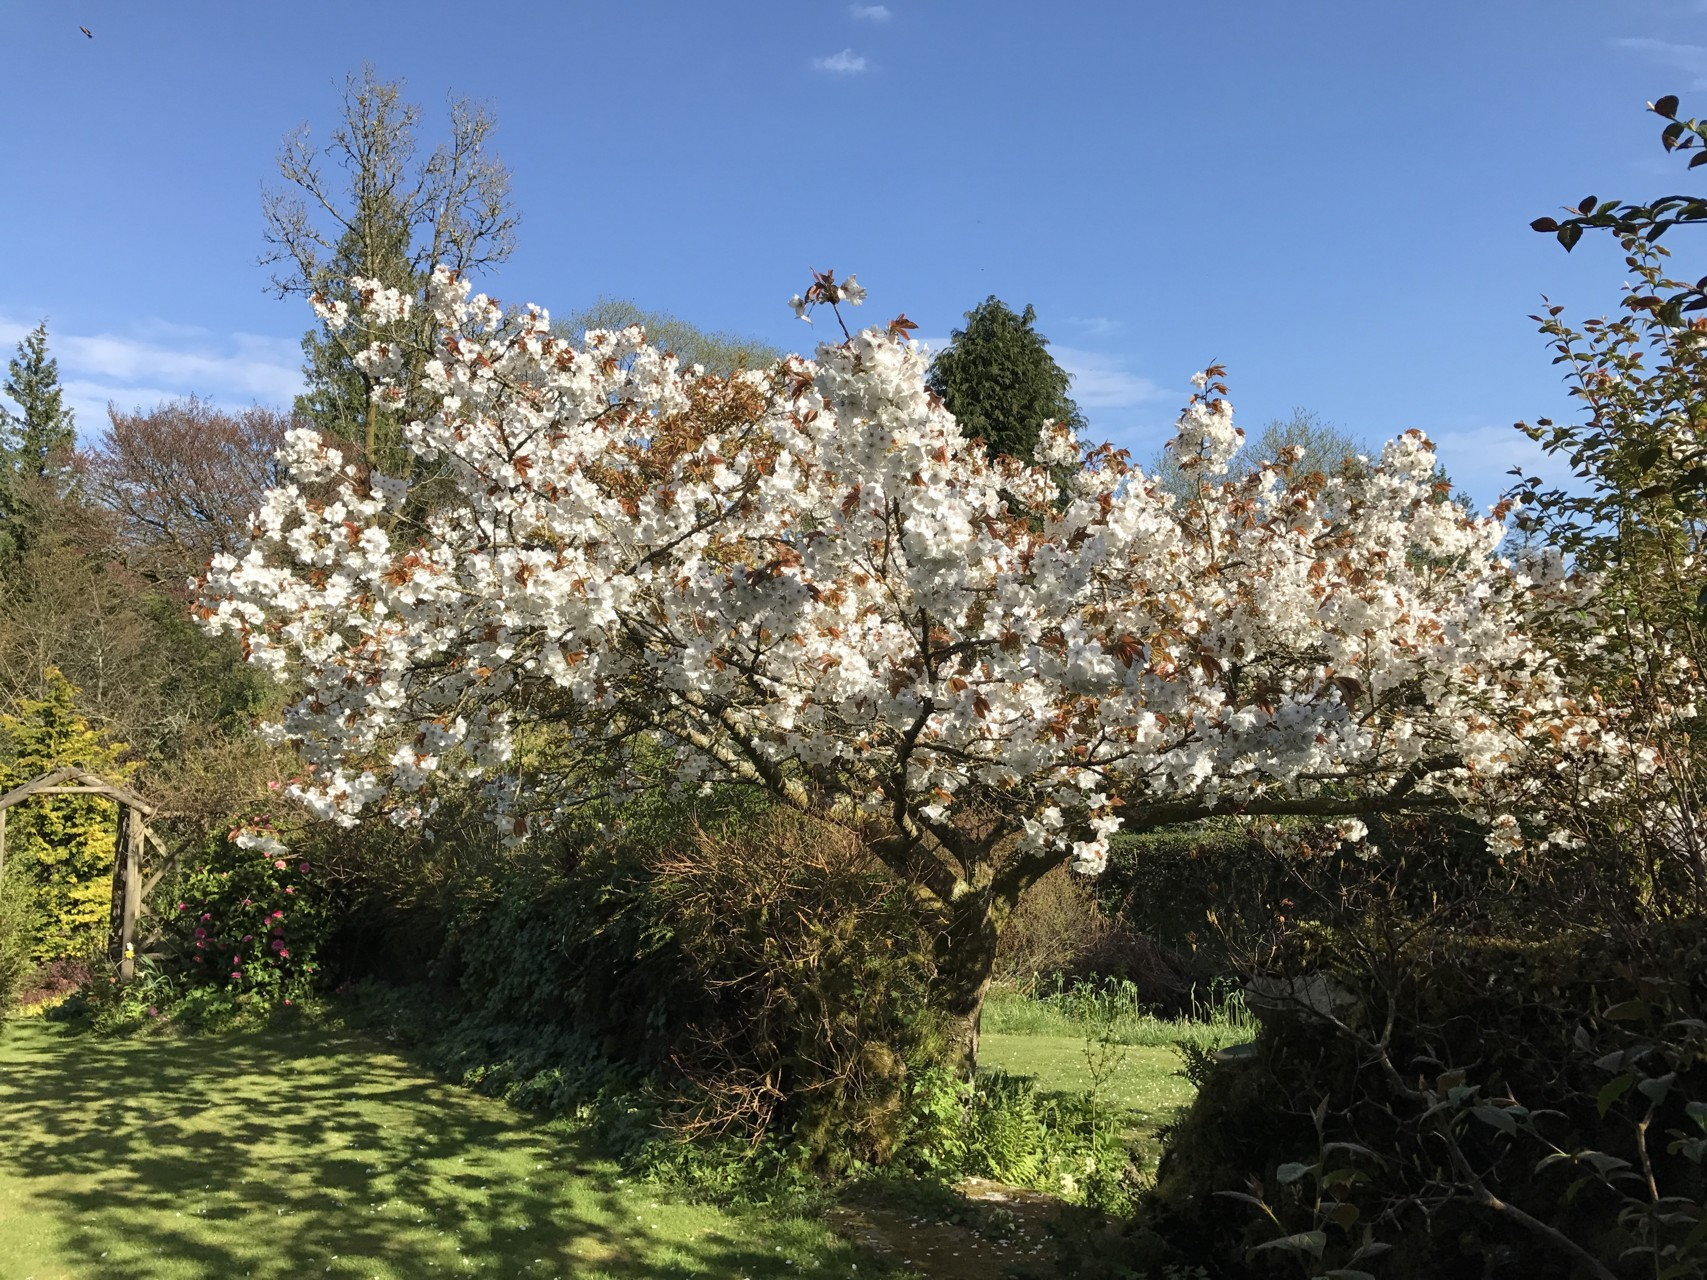 The 'Great White Cherry'